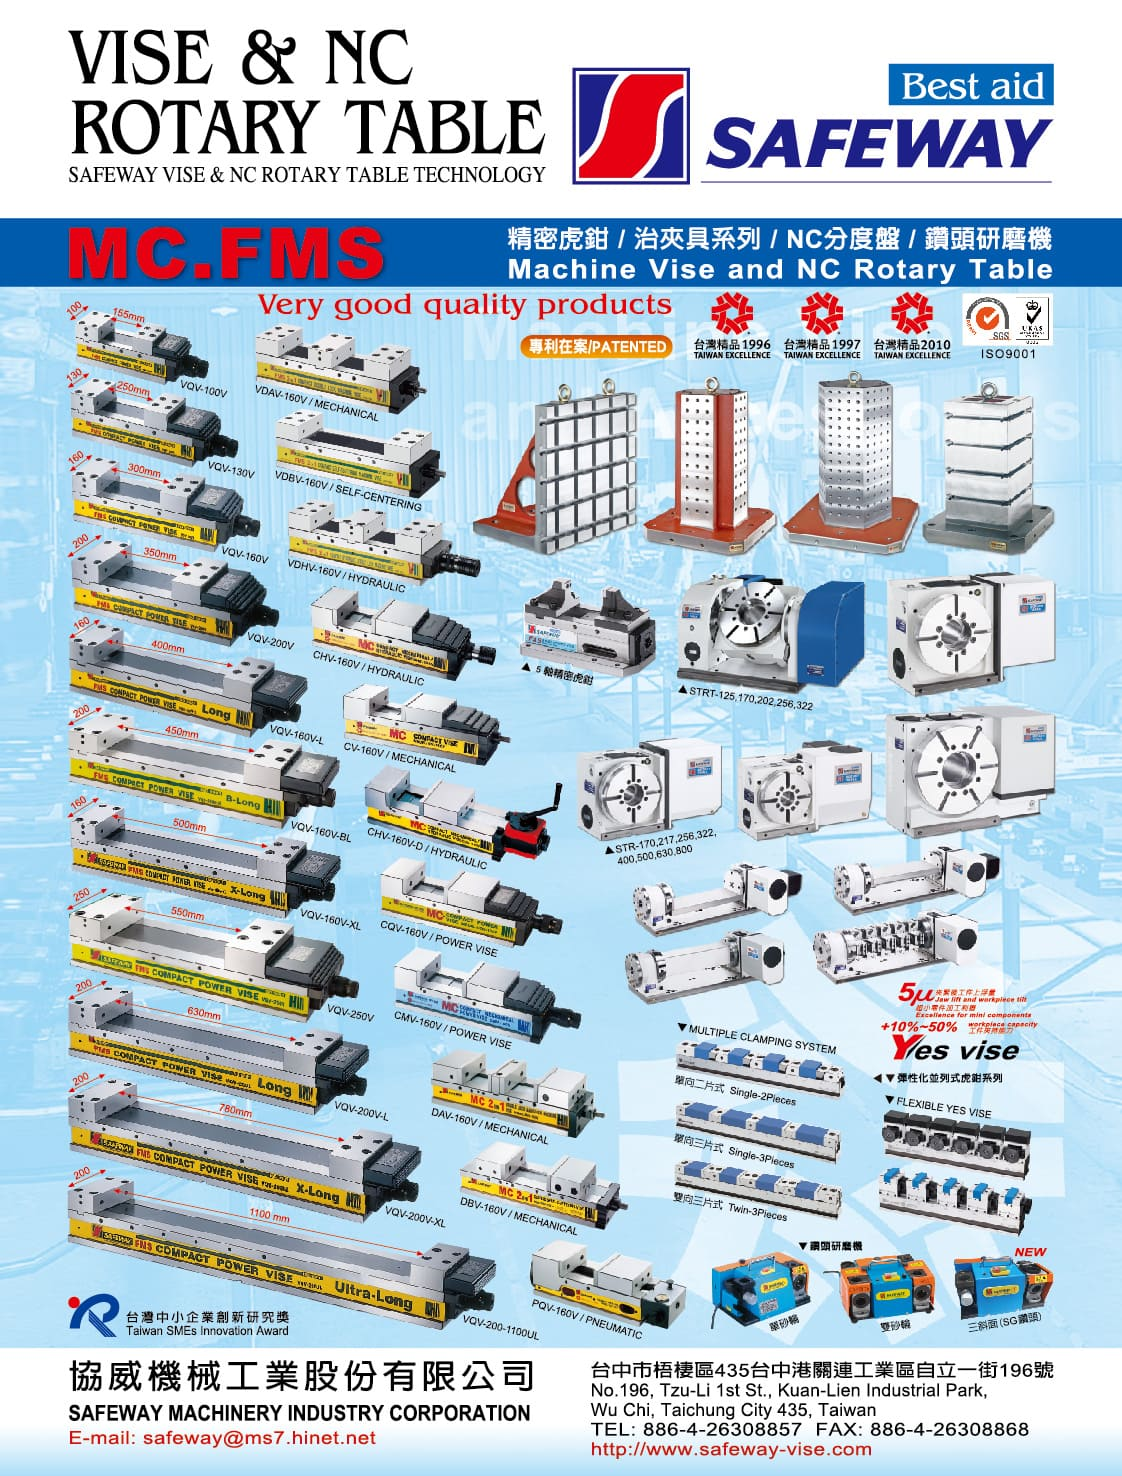 SAFEWAY MACHINERY INDUSTRY CORPORATION